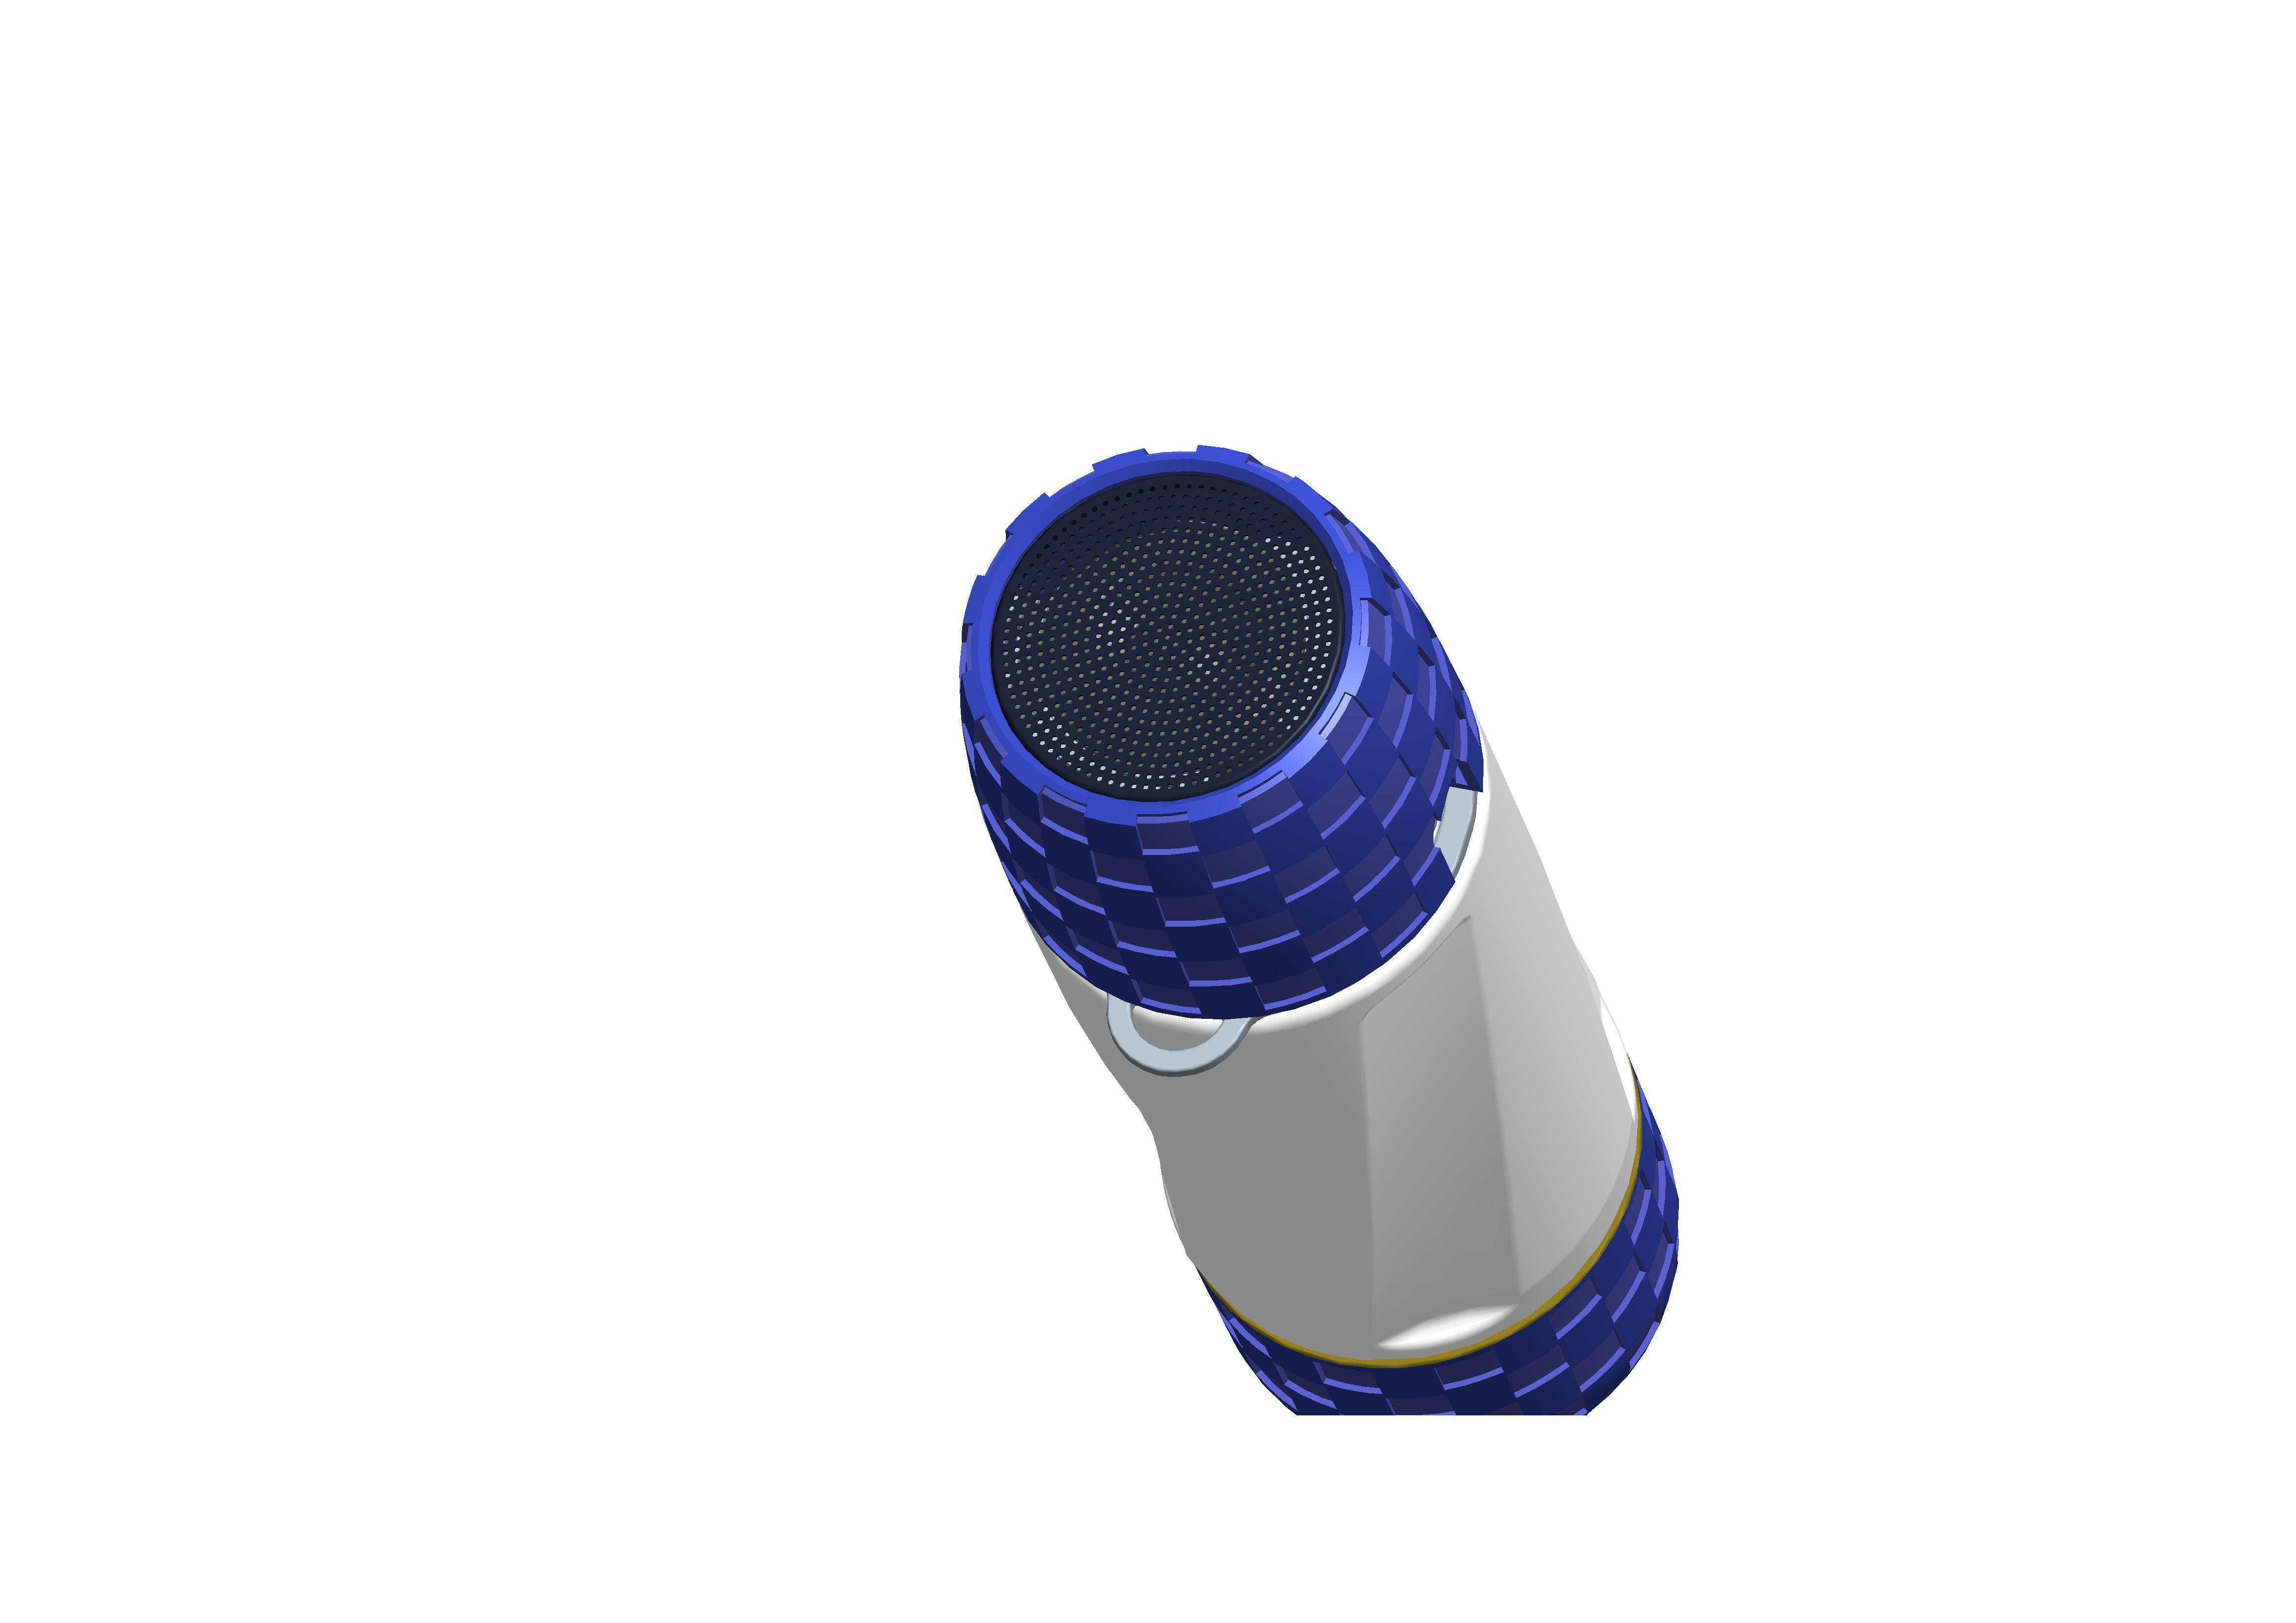 2017 Newest Design Heat Preservation Water Bottle with Sports Waterproof Bluetooth Speaker and Power Bank (OITA-9900)